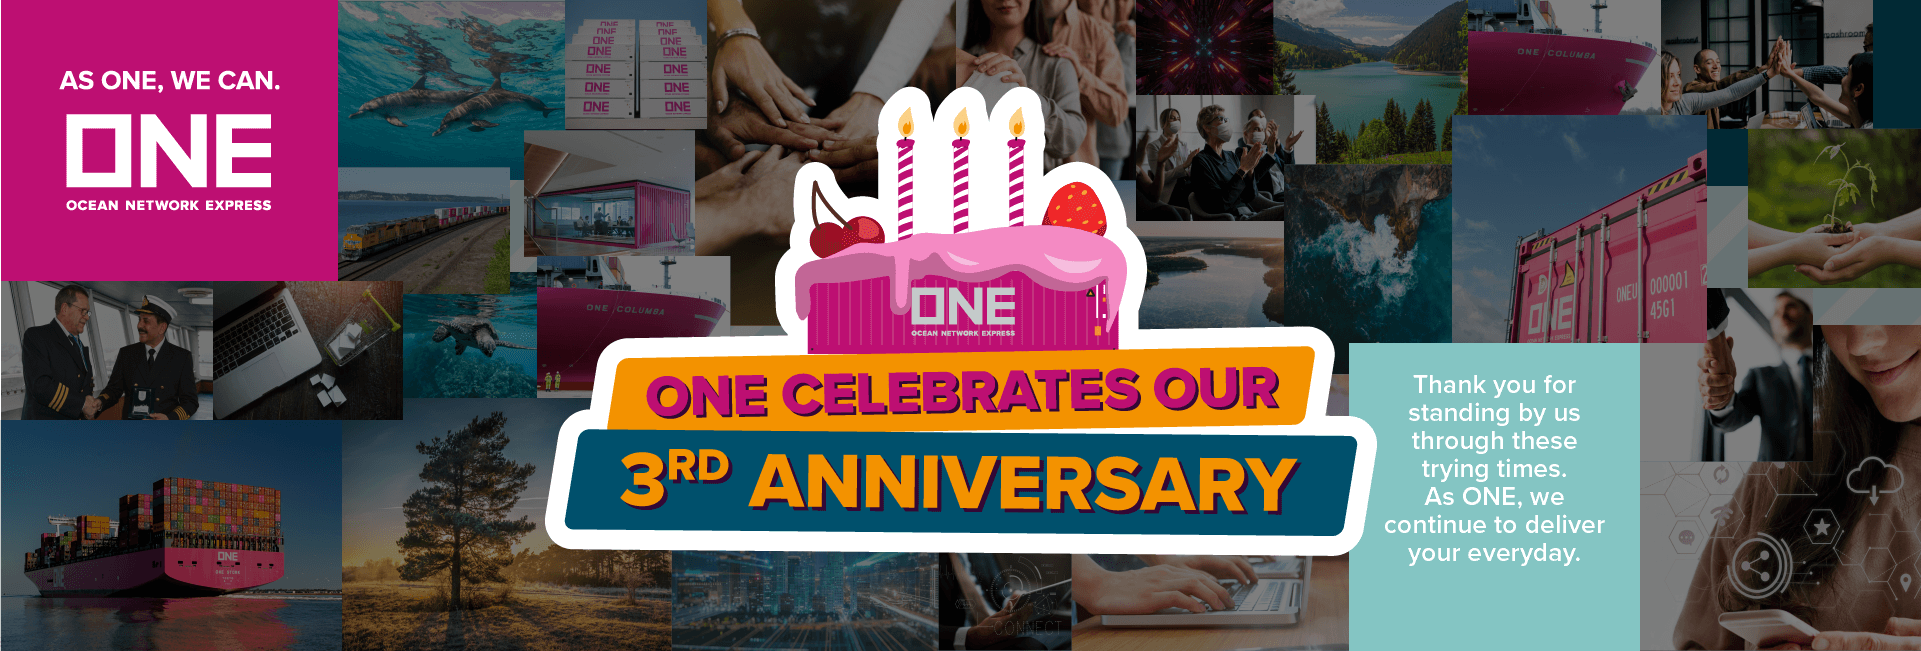 ONE Third anniversary